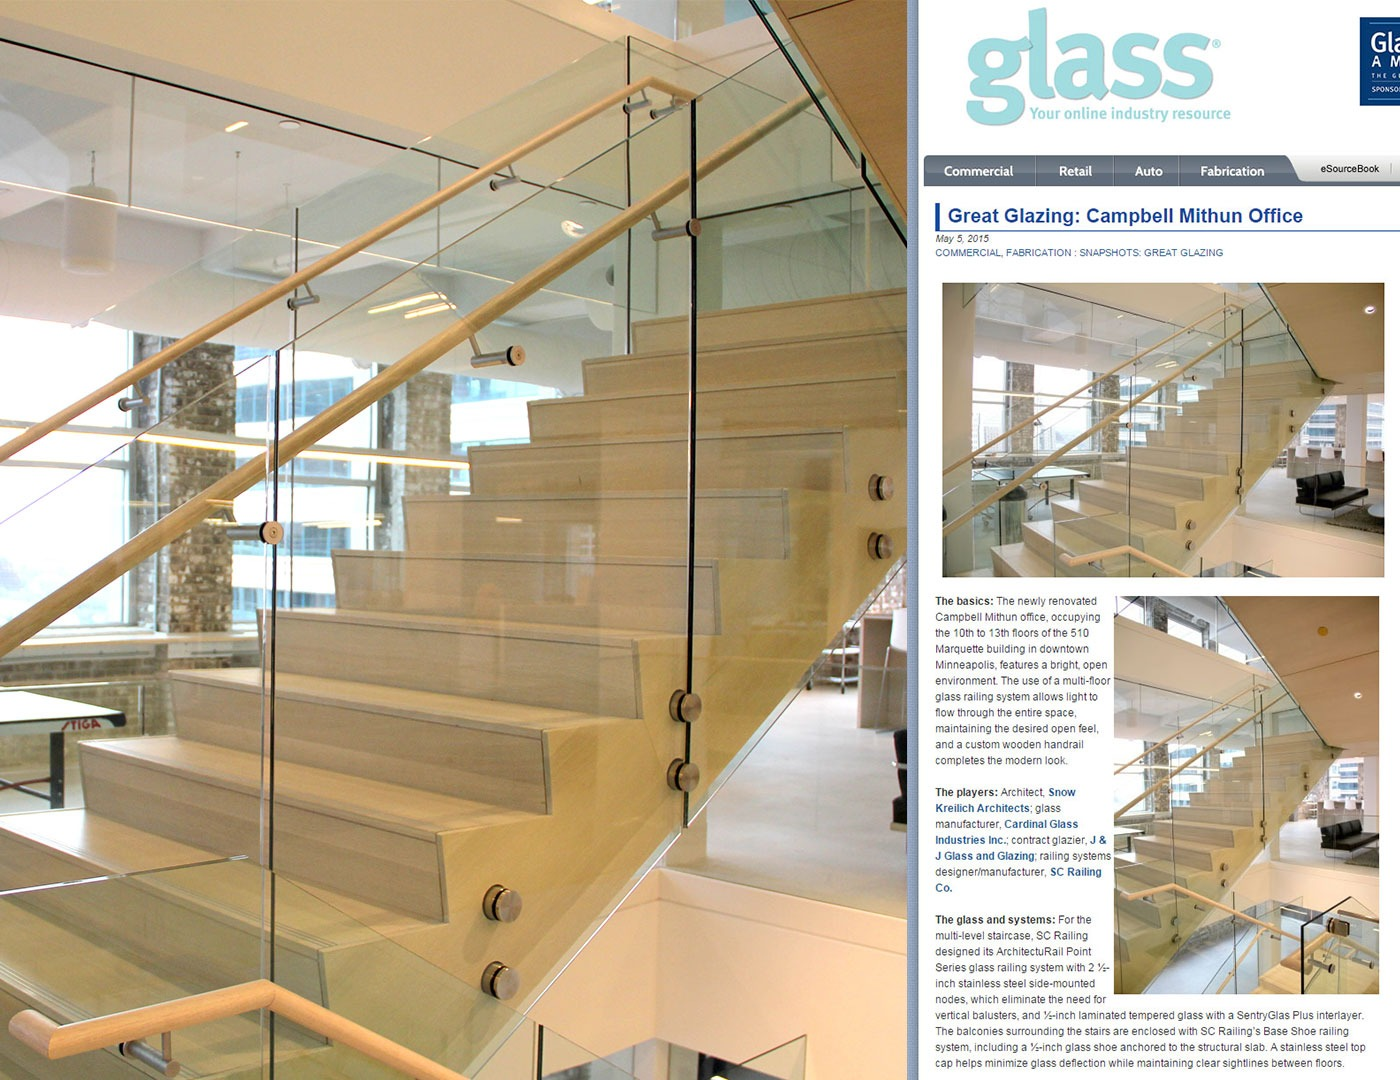 Great Glazing (e-glass weekly) features ArchitectuRAIL at Campbell Mithun